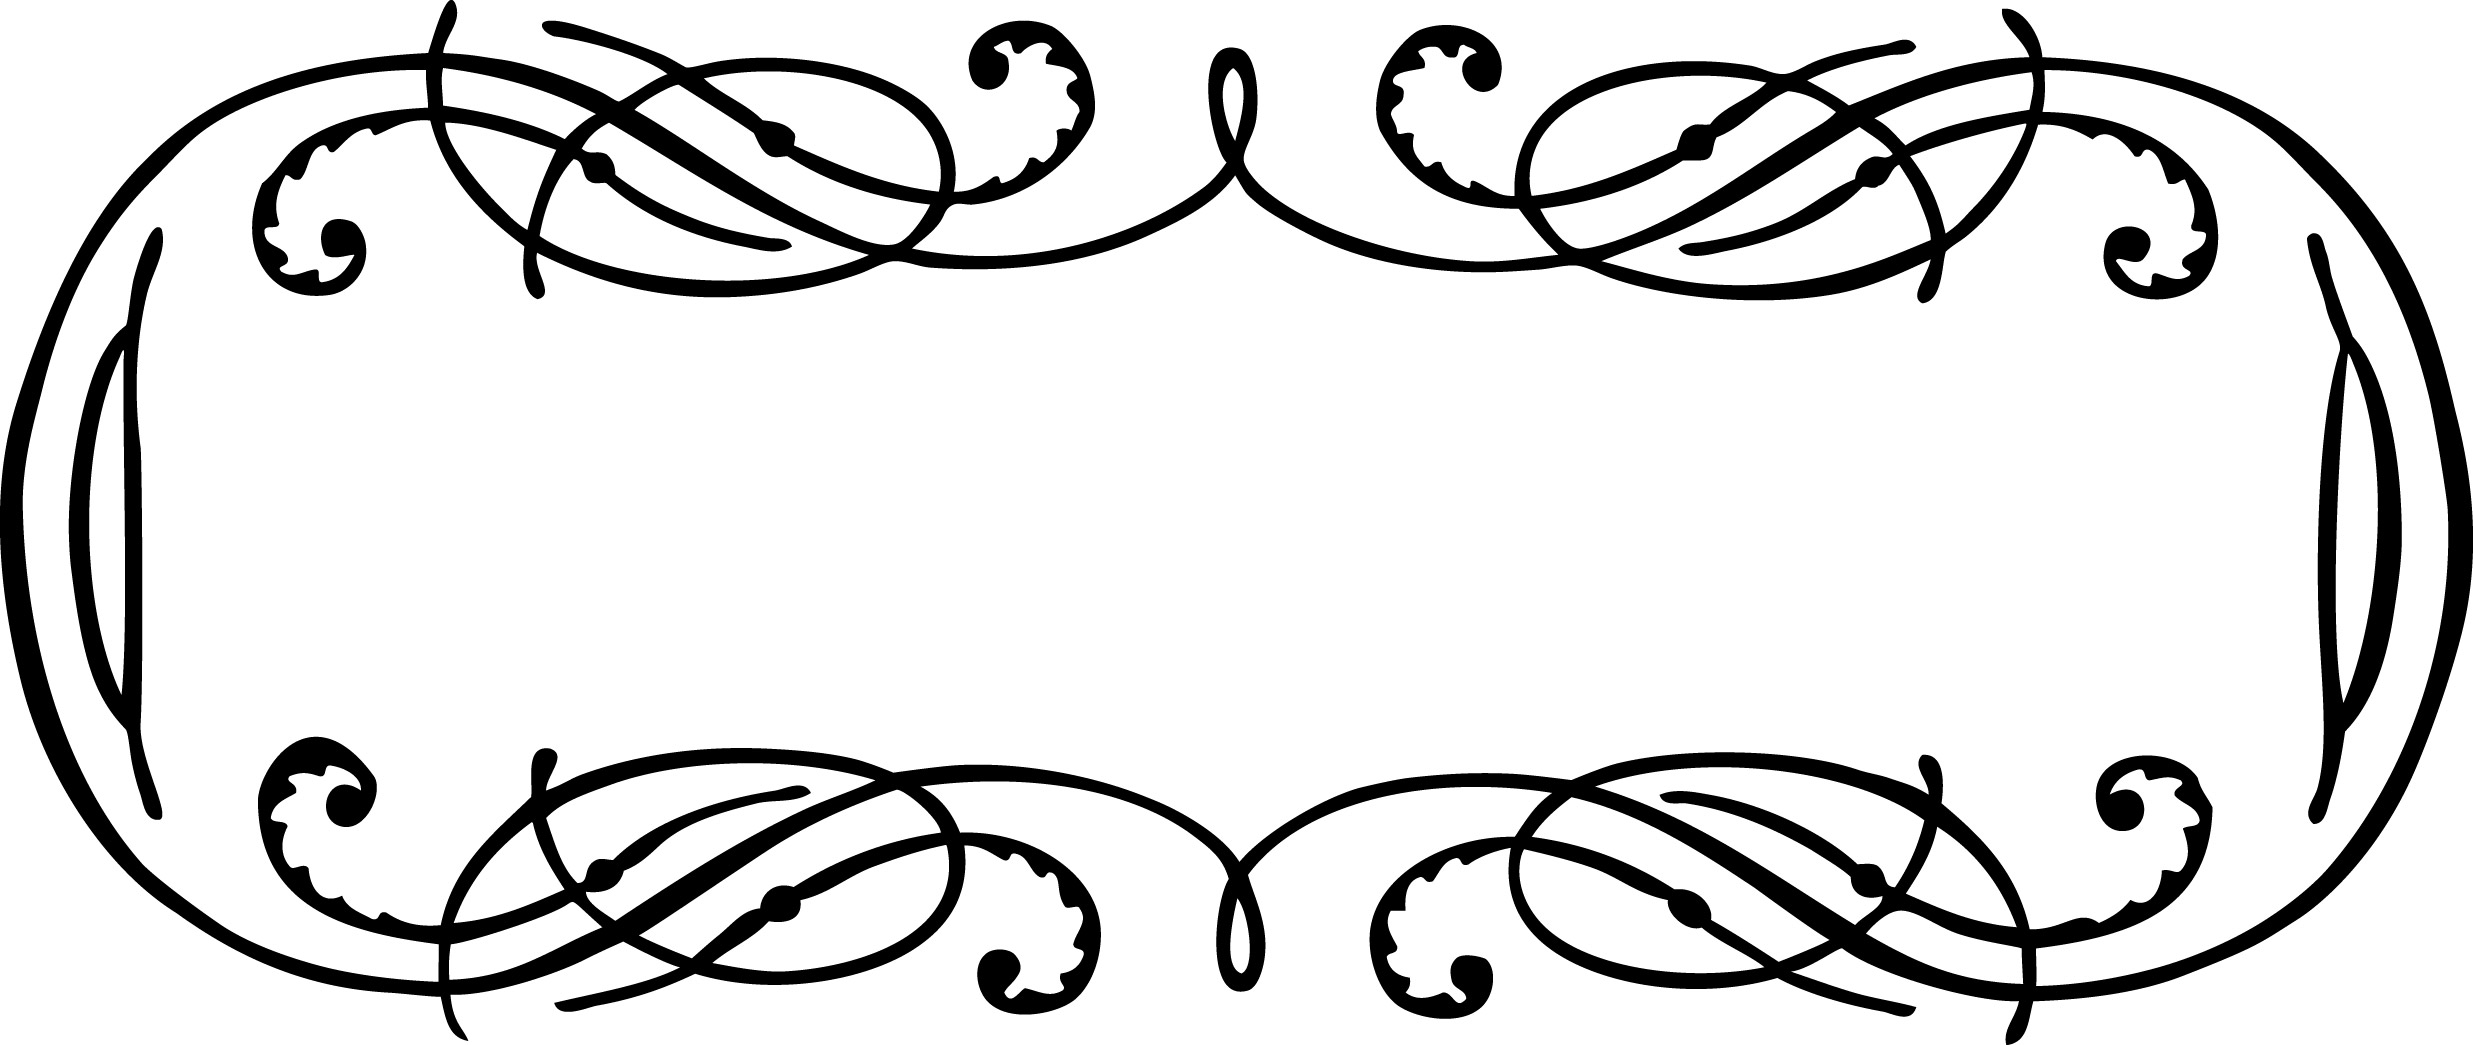 Free Calligraphy Cliparts, Download Free Clip Art, Free Clip.